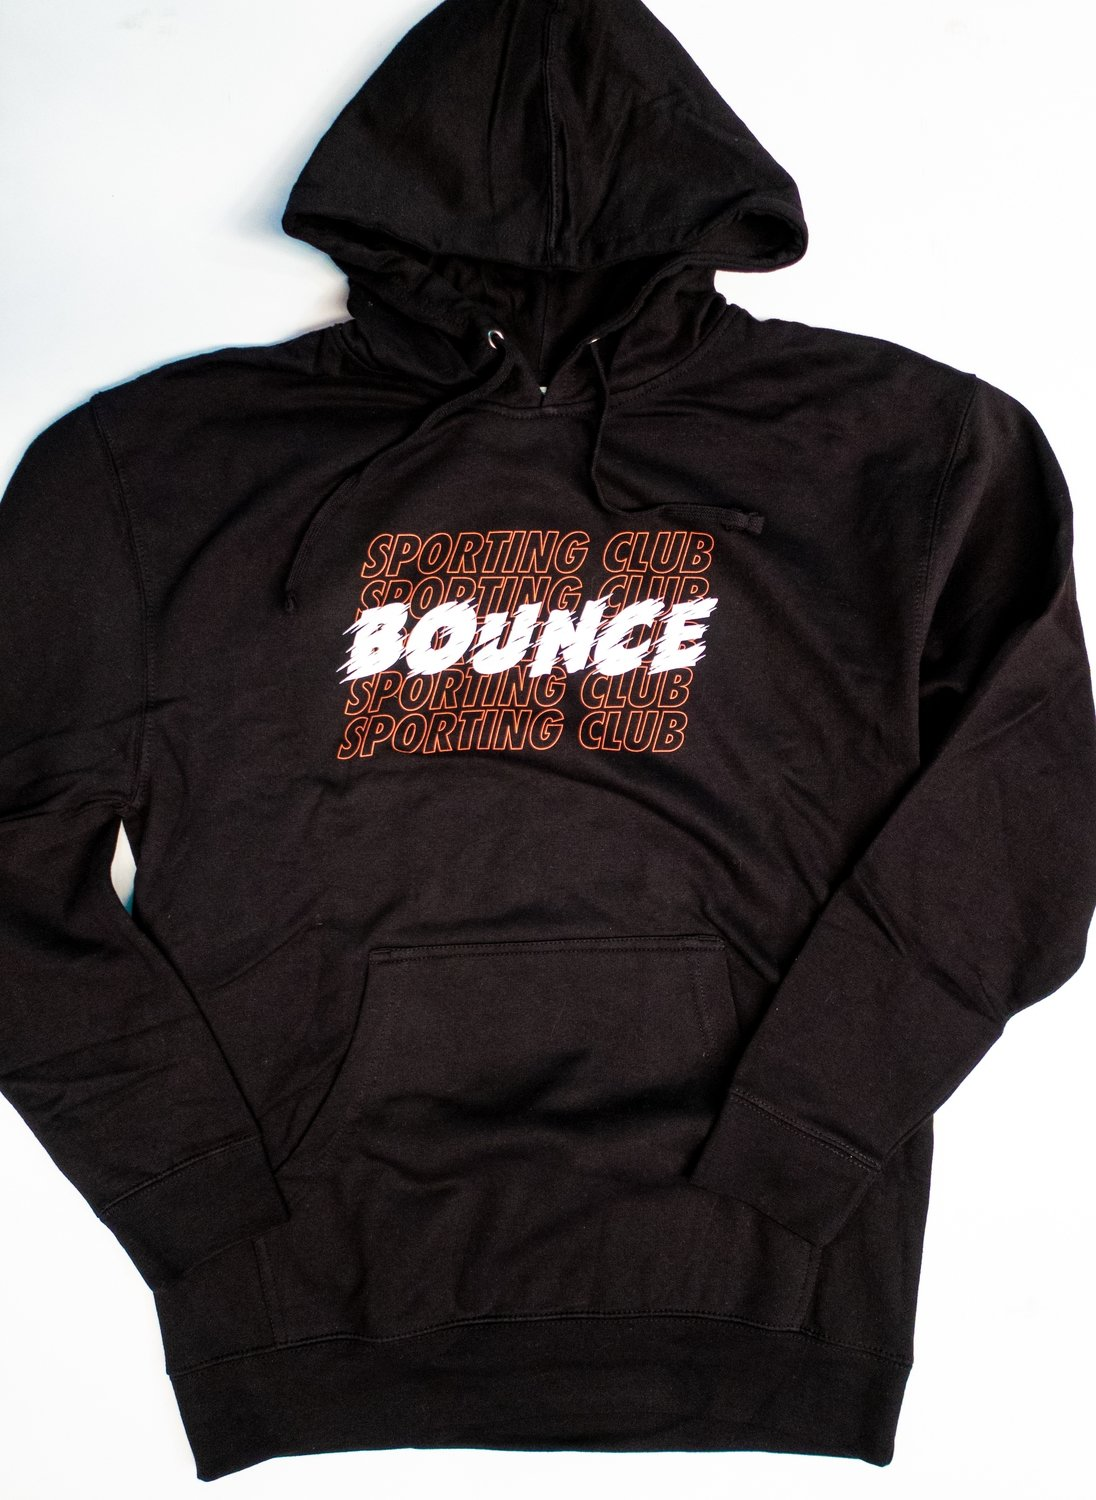 Bounce Graphic Hoodie - Red, Black & White